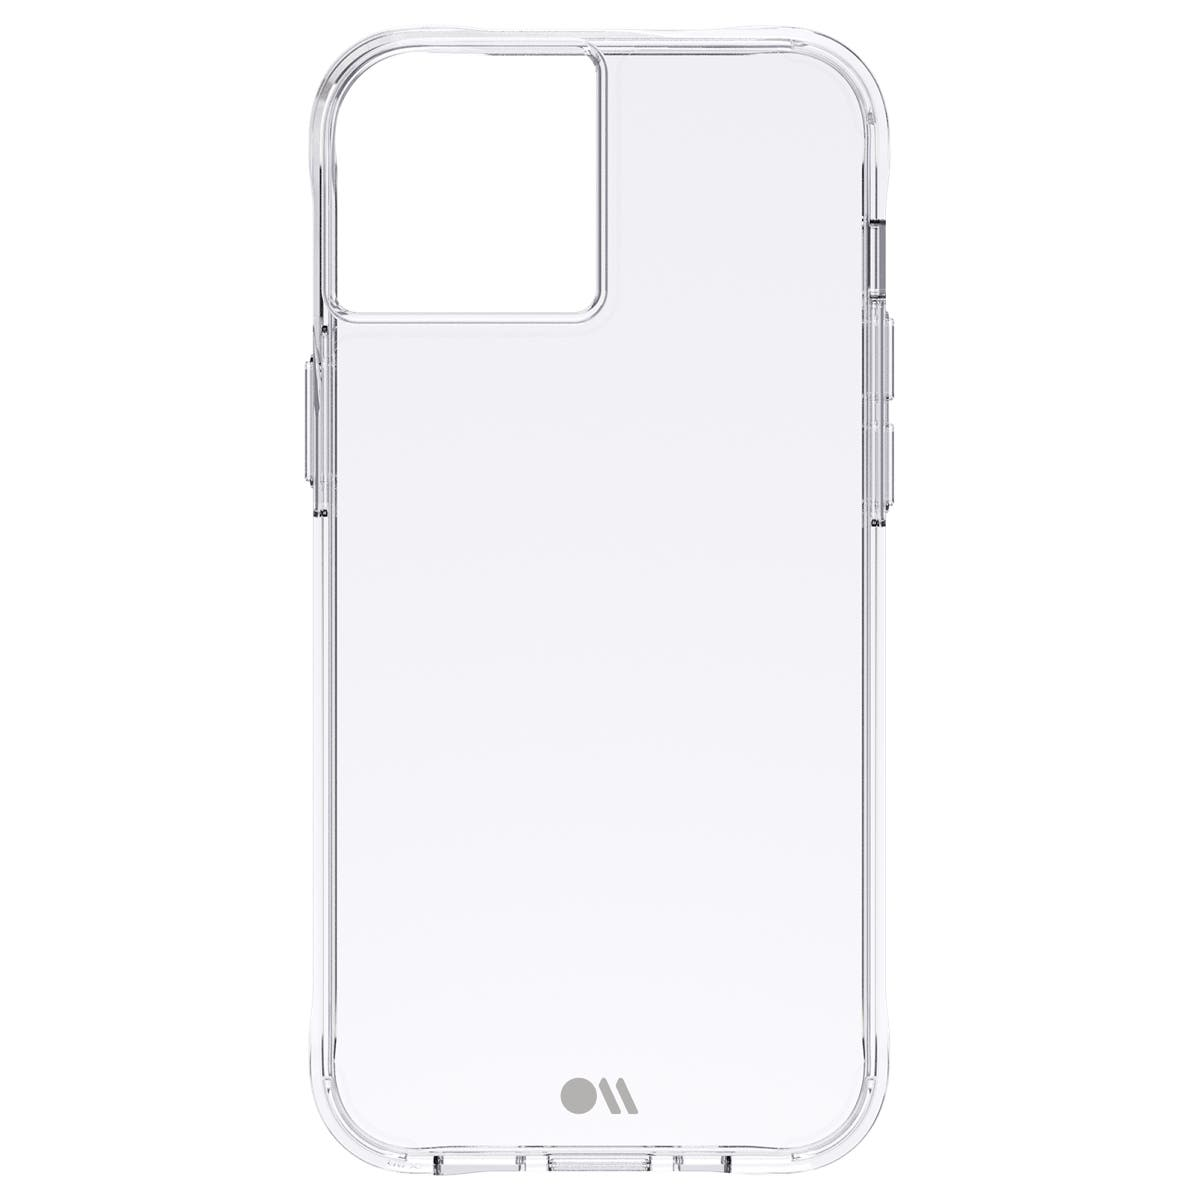 Case Mate Tough Case for iPhone 13 - Clear